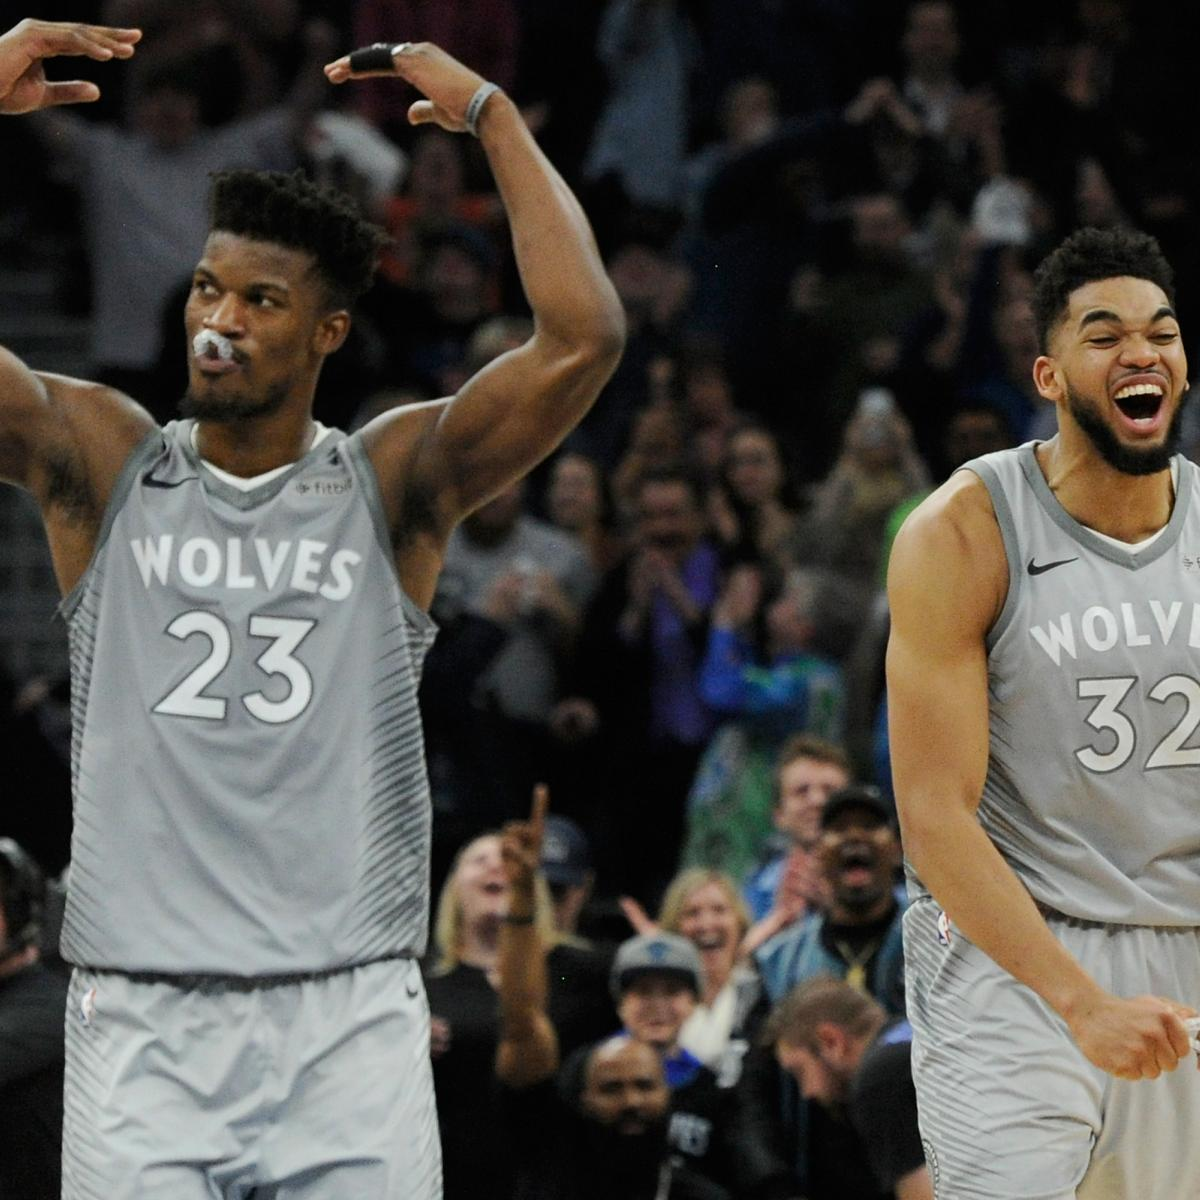 Report: Jimmy Butler Trade Focus for Timberwolves After Karl-Anthony Towns Deal